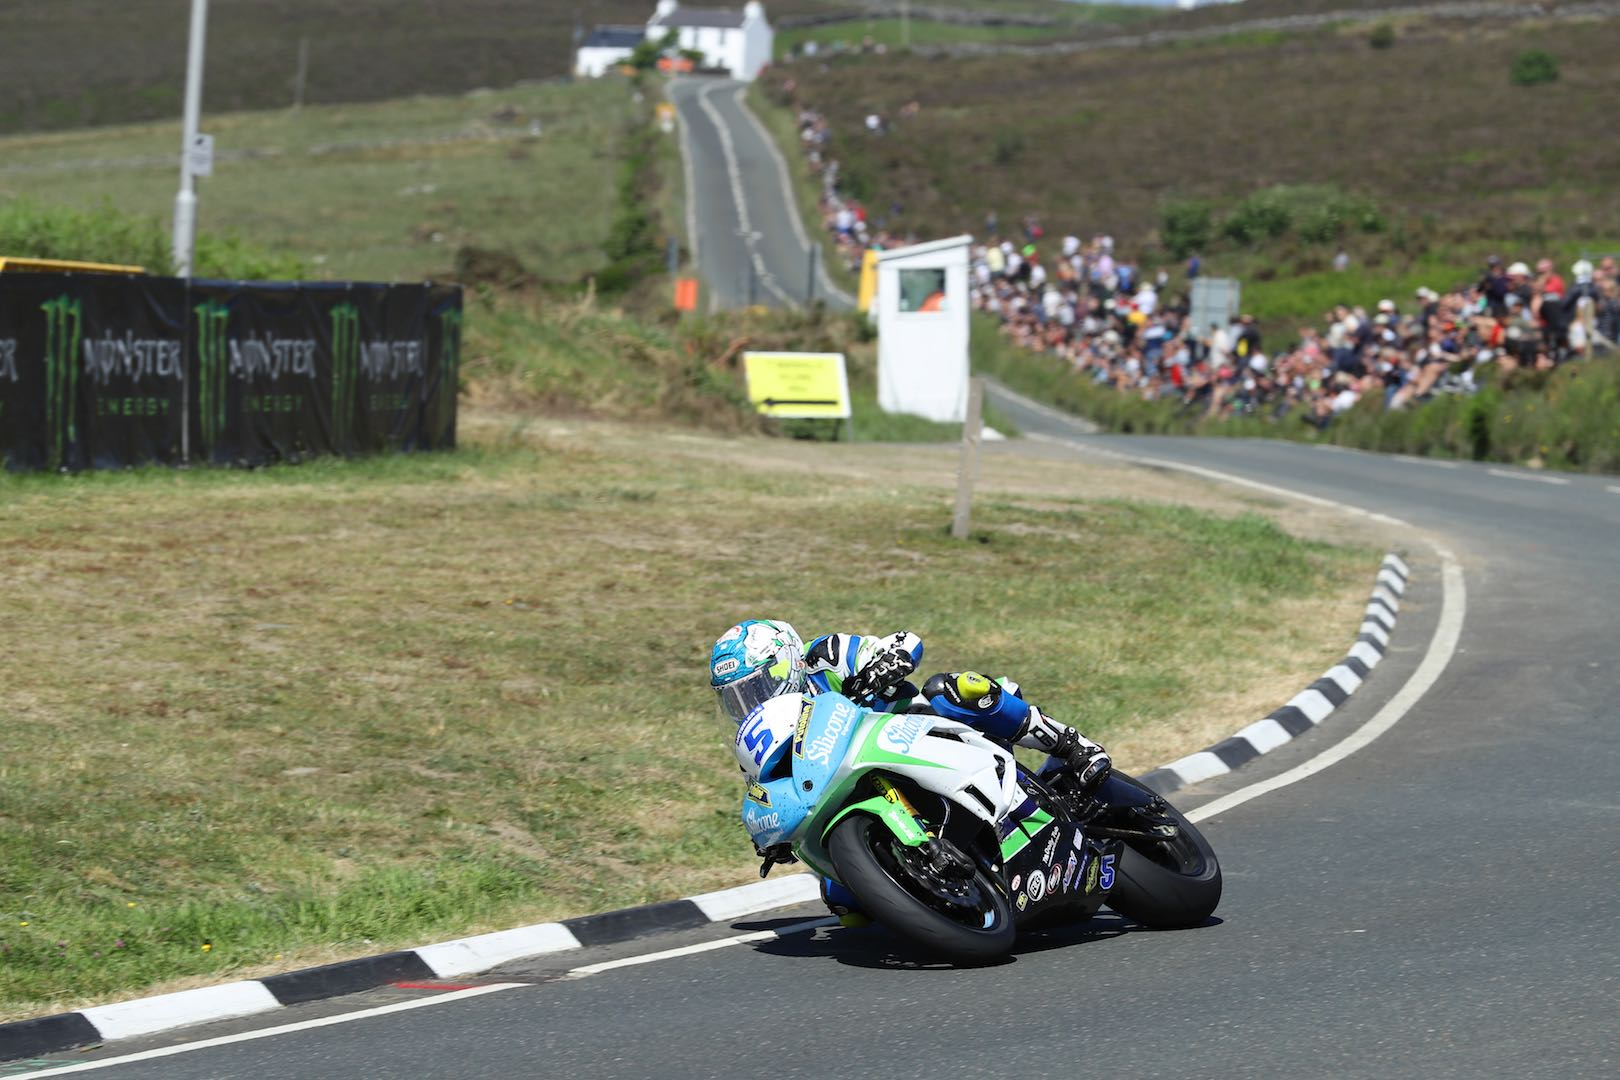 Isle of Man TT Supersport 2 Race Kawasaki's Dean Harrison